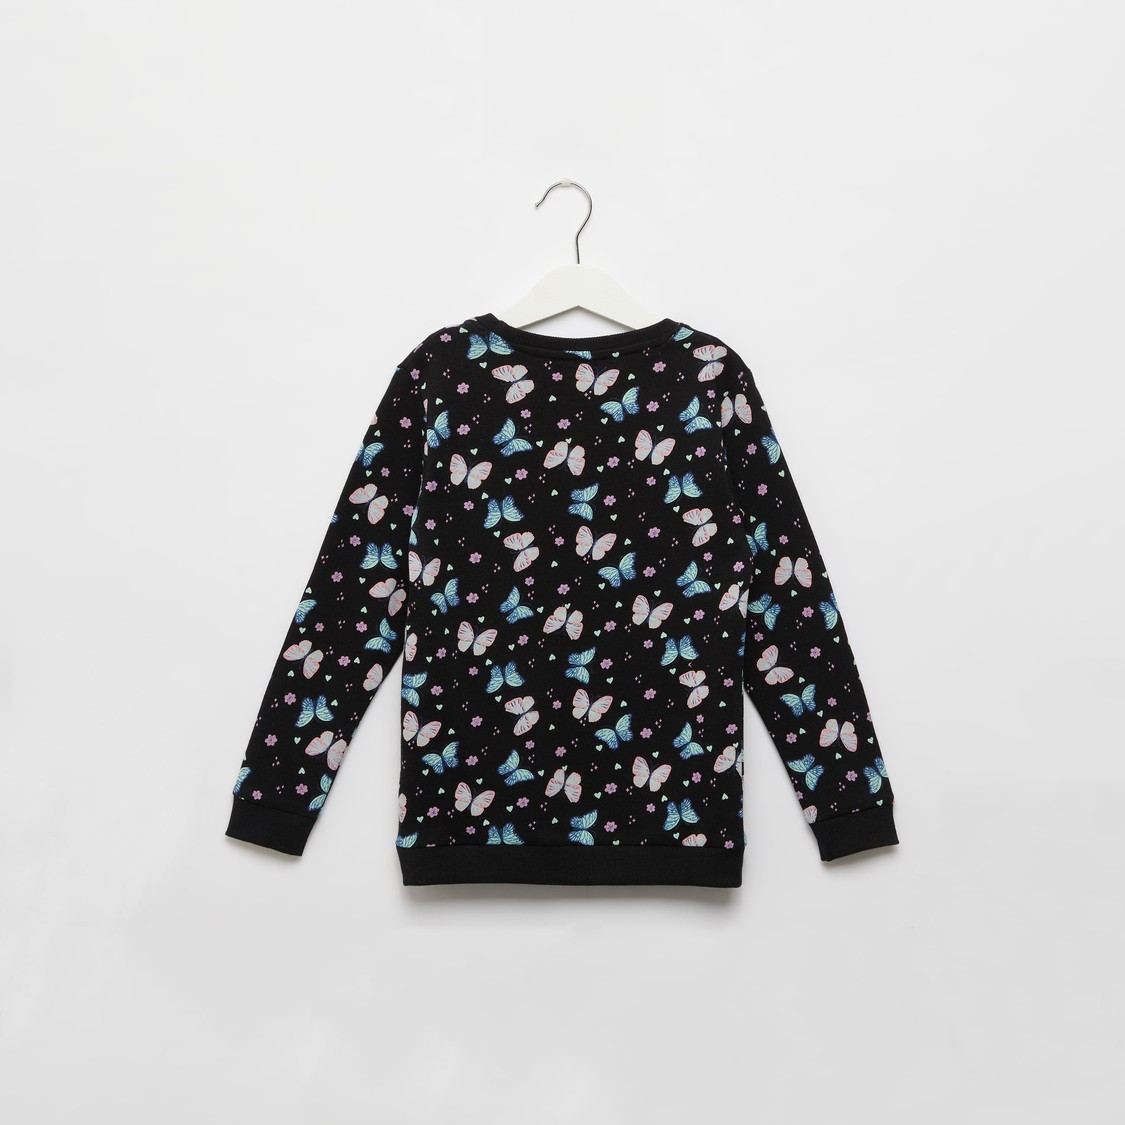 All-Over Butterfly Print Sweatshirt with Round Neck and Long Sleeves